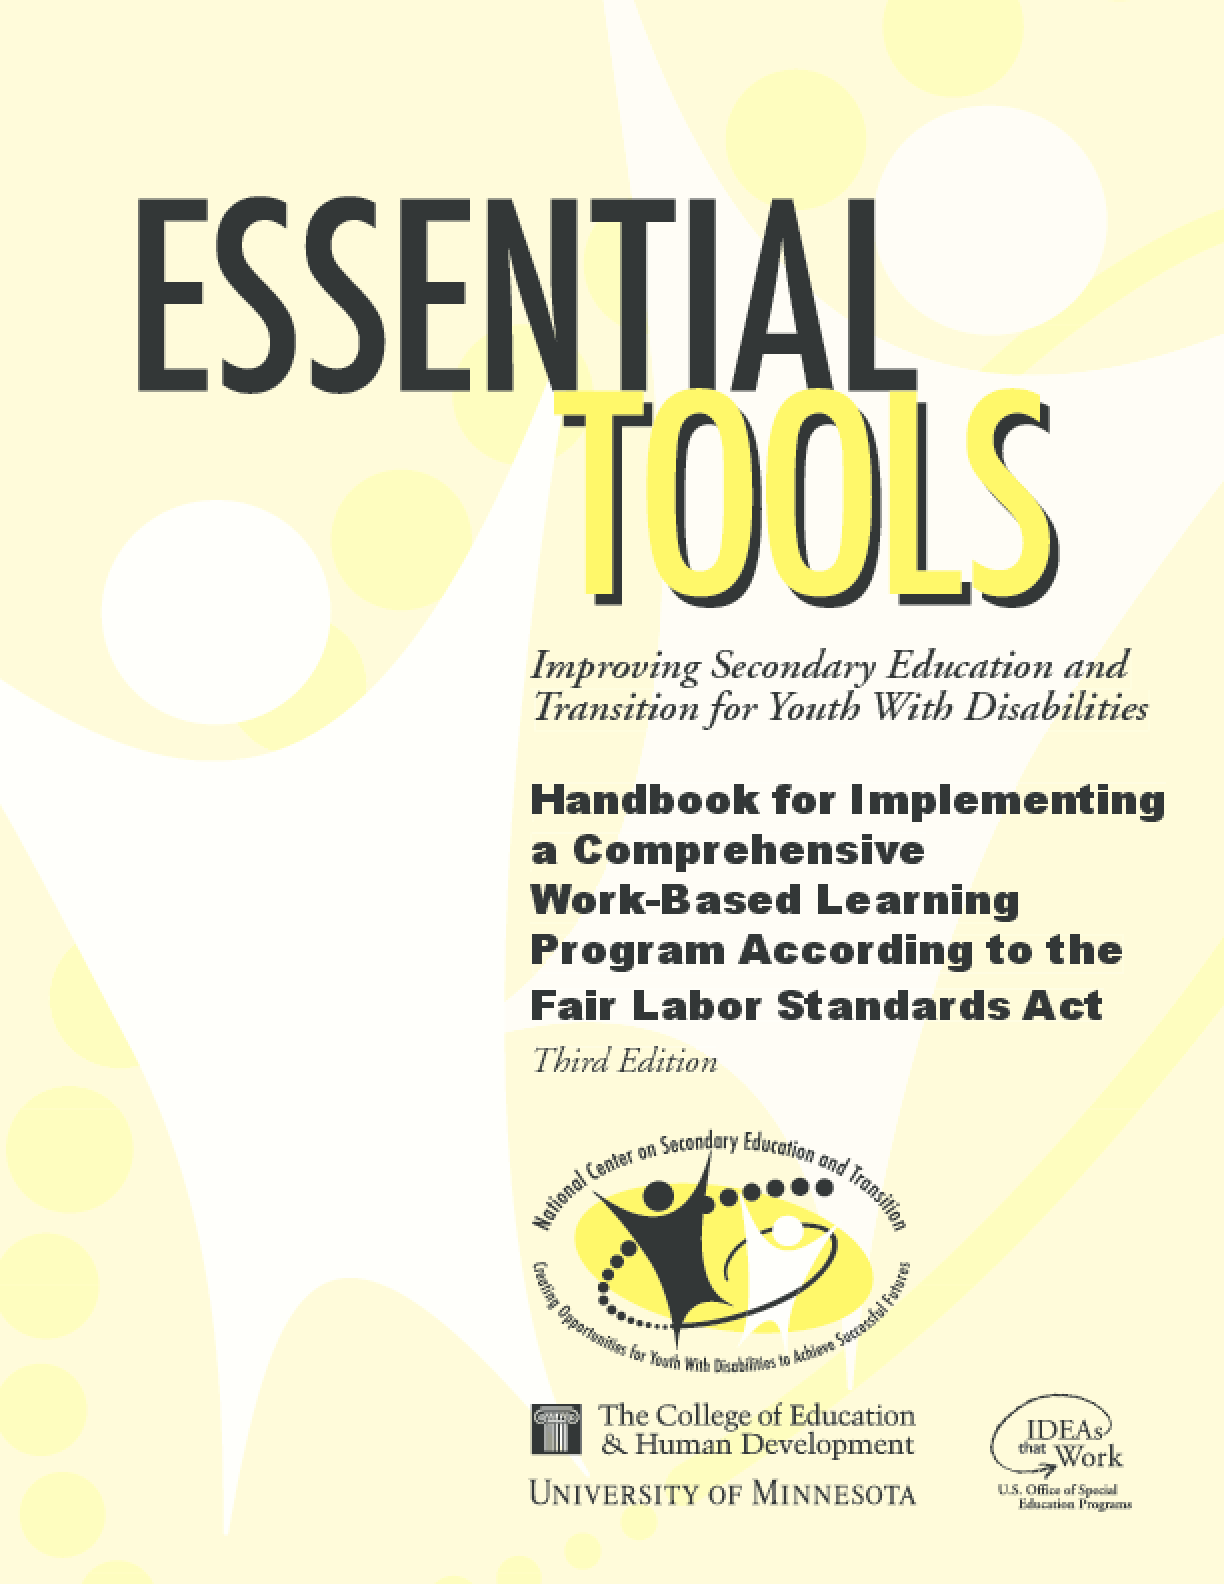 Handbook for Implementing a Comprehensive Work-Based Learning Program According to the Fair Labor Standards Act